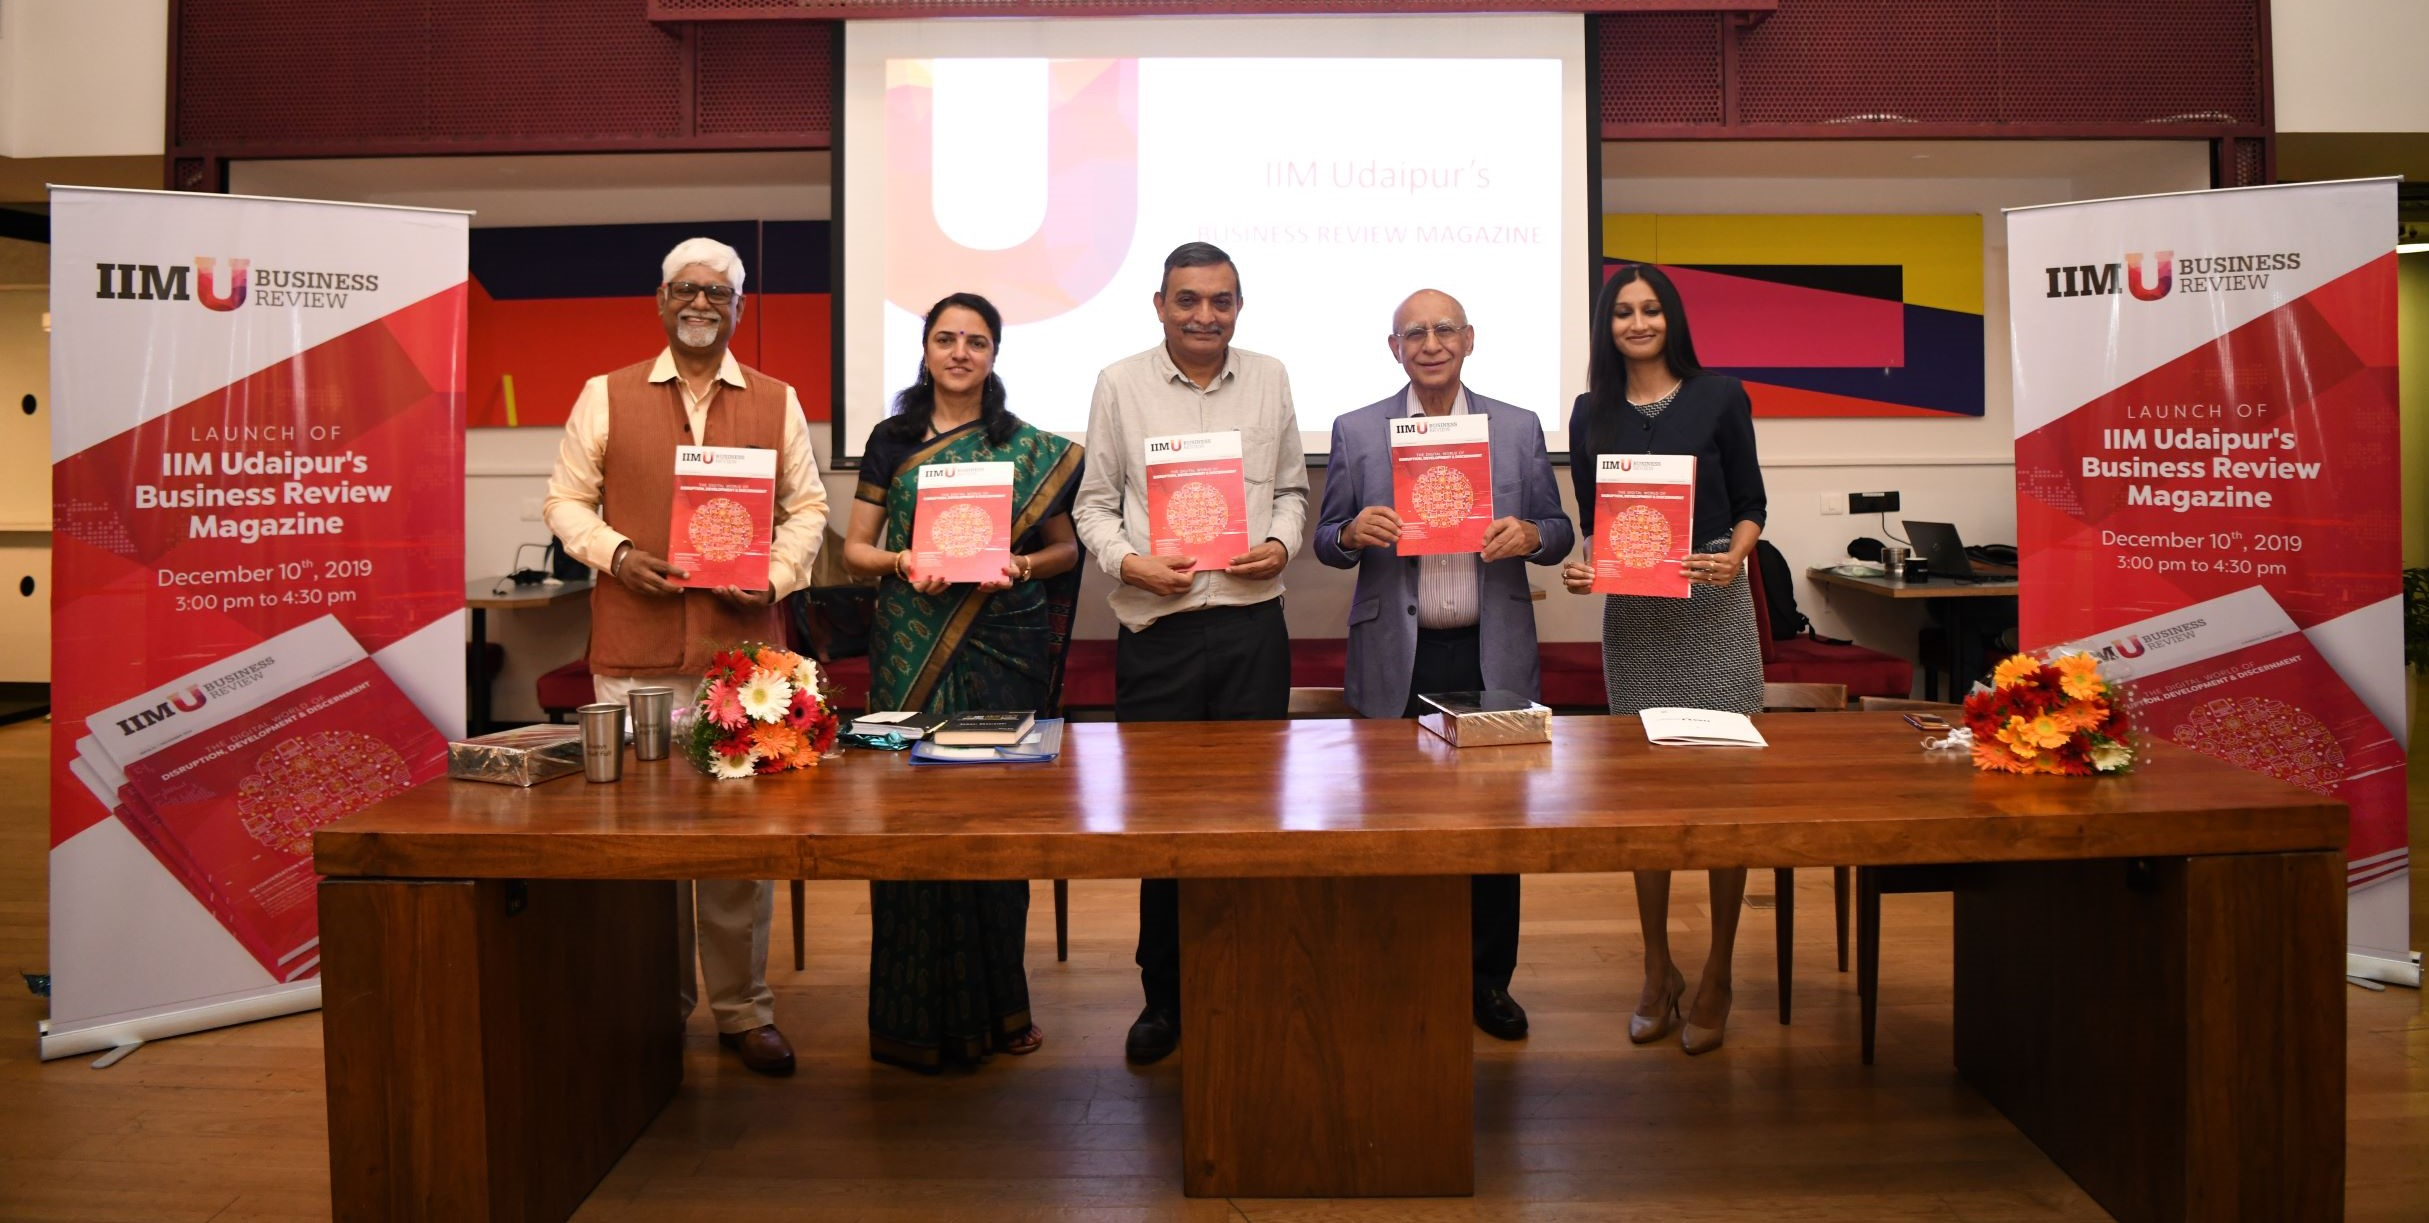 IIM Udaipur Launches Business Review Magazine